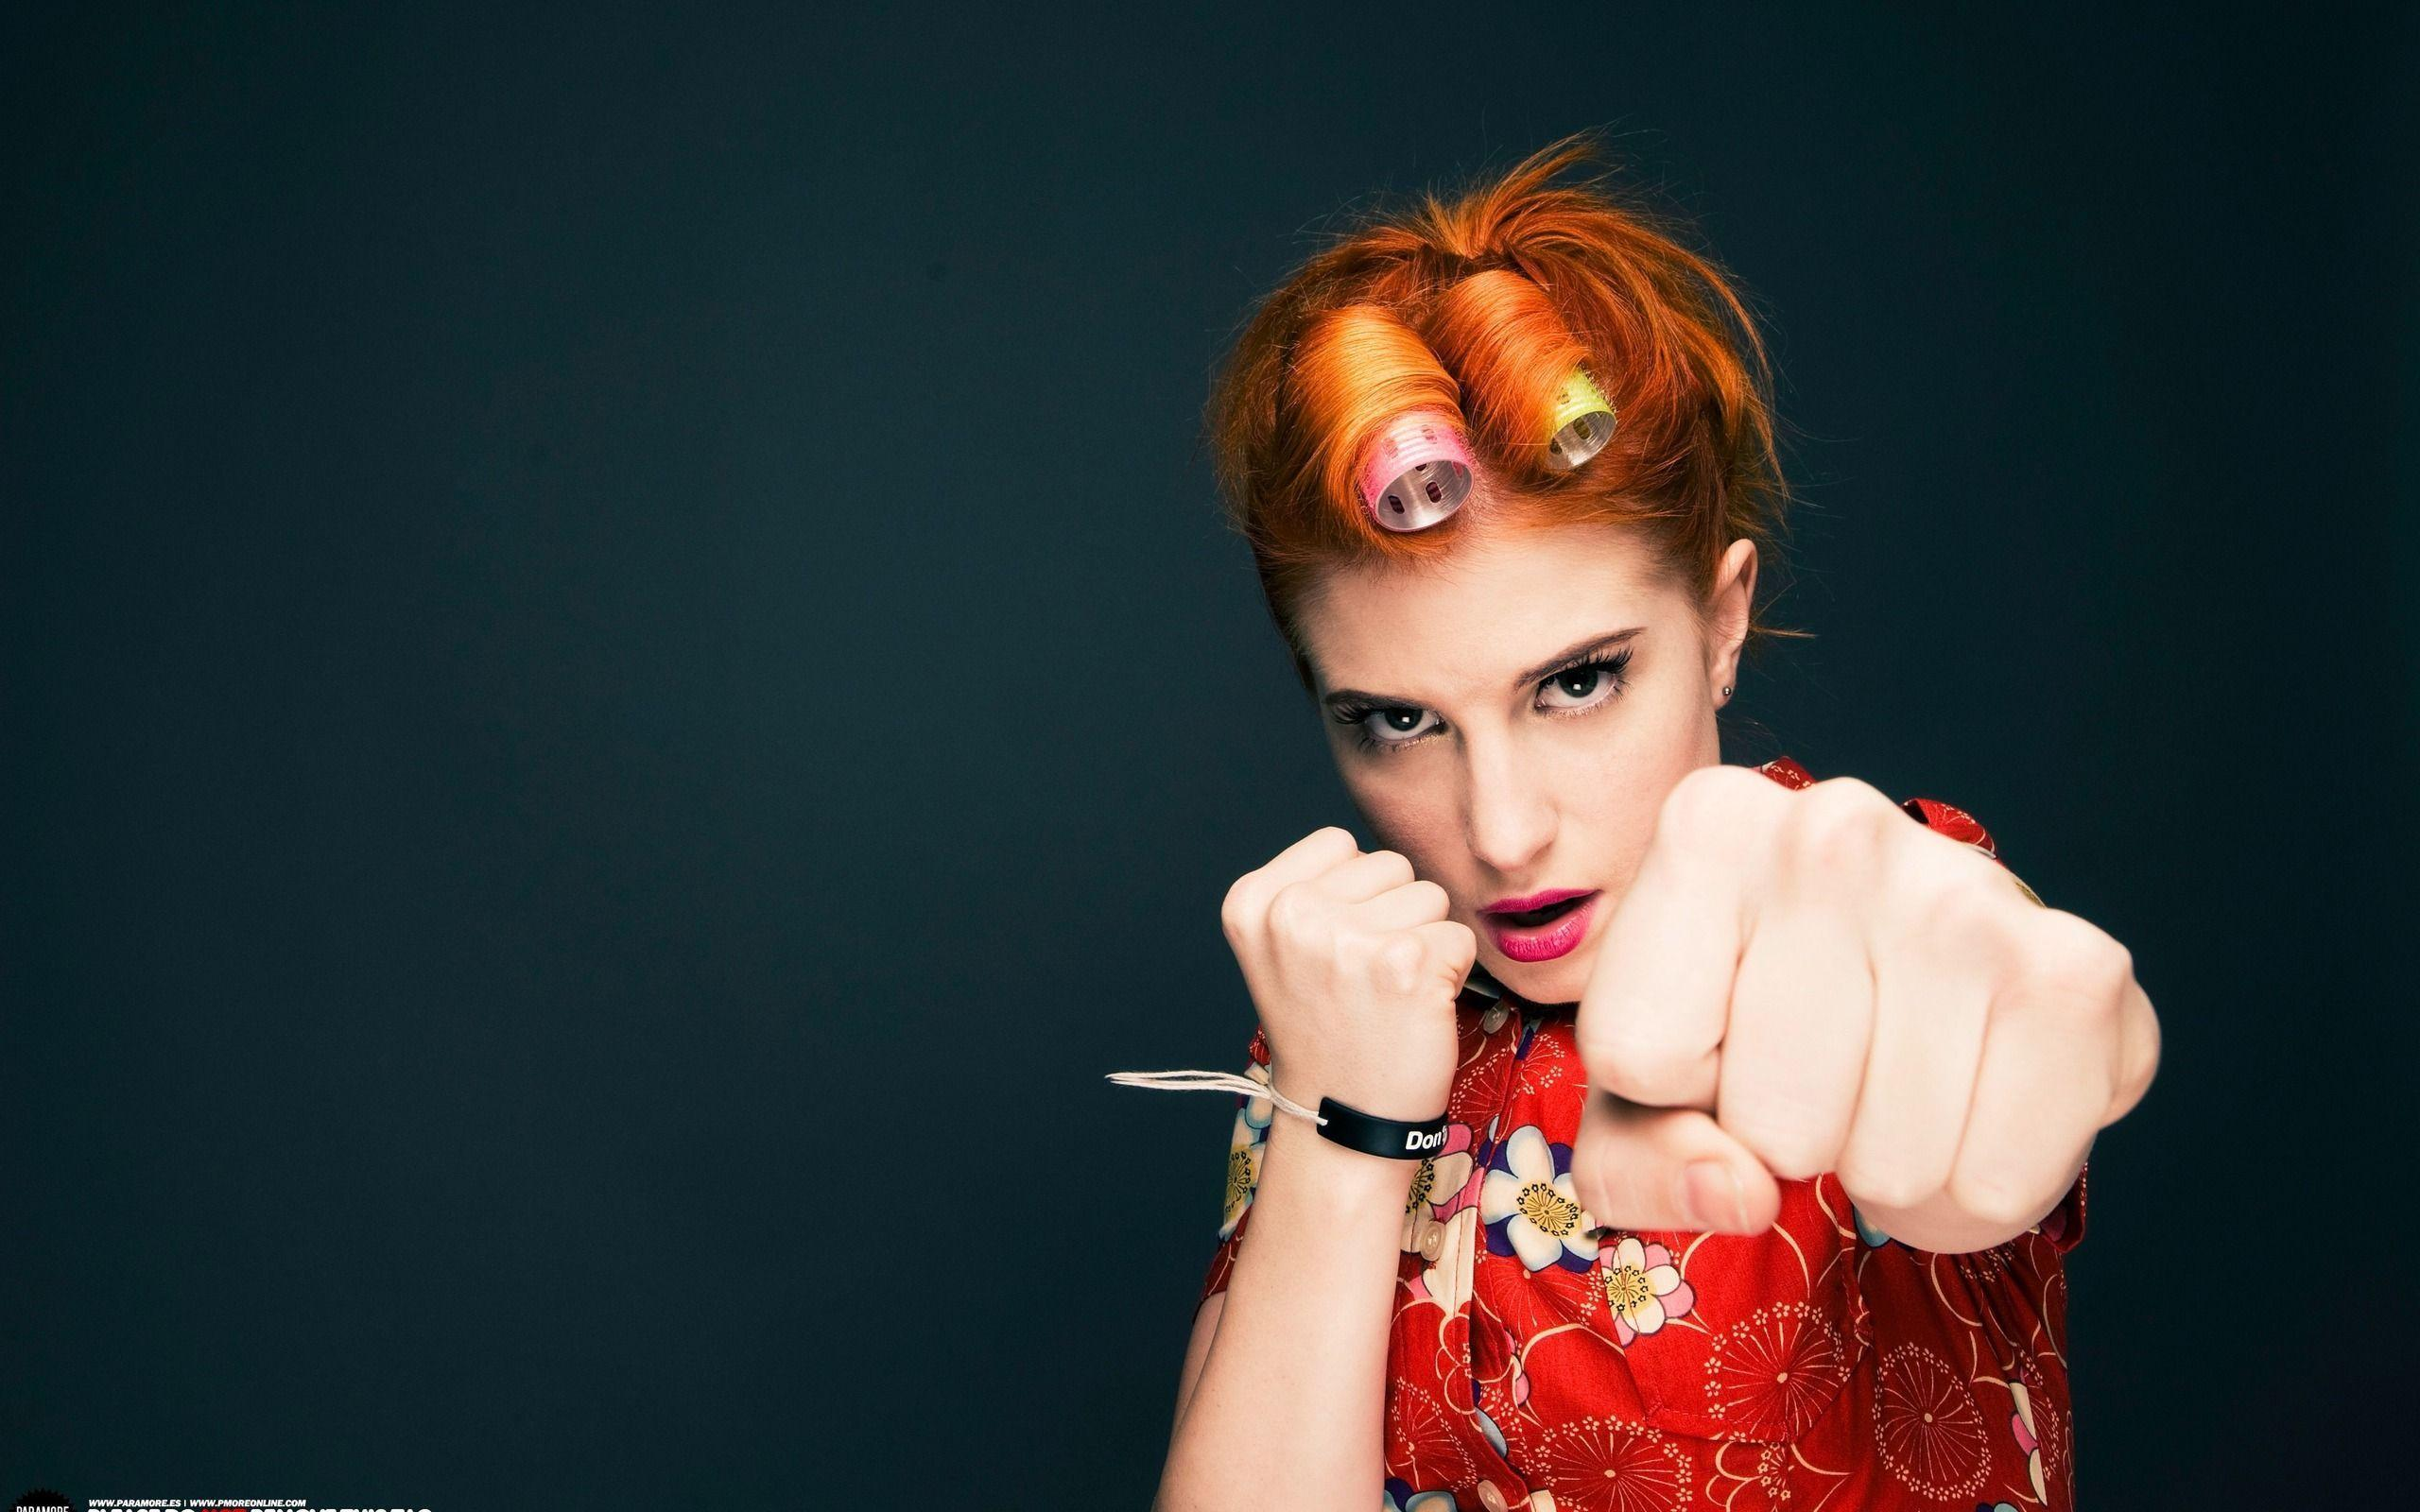 Hayley Williams Backgrounds - Wallpaper Cave